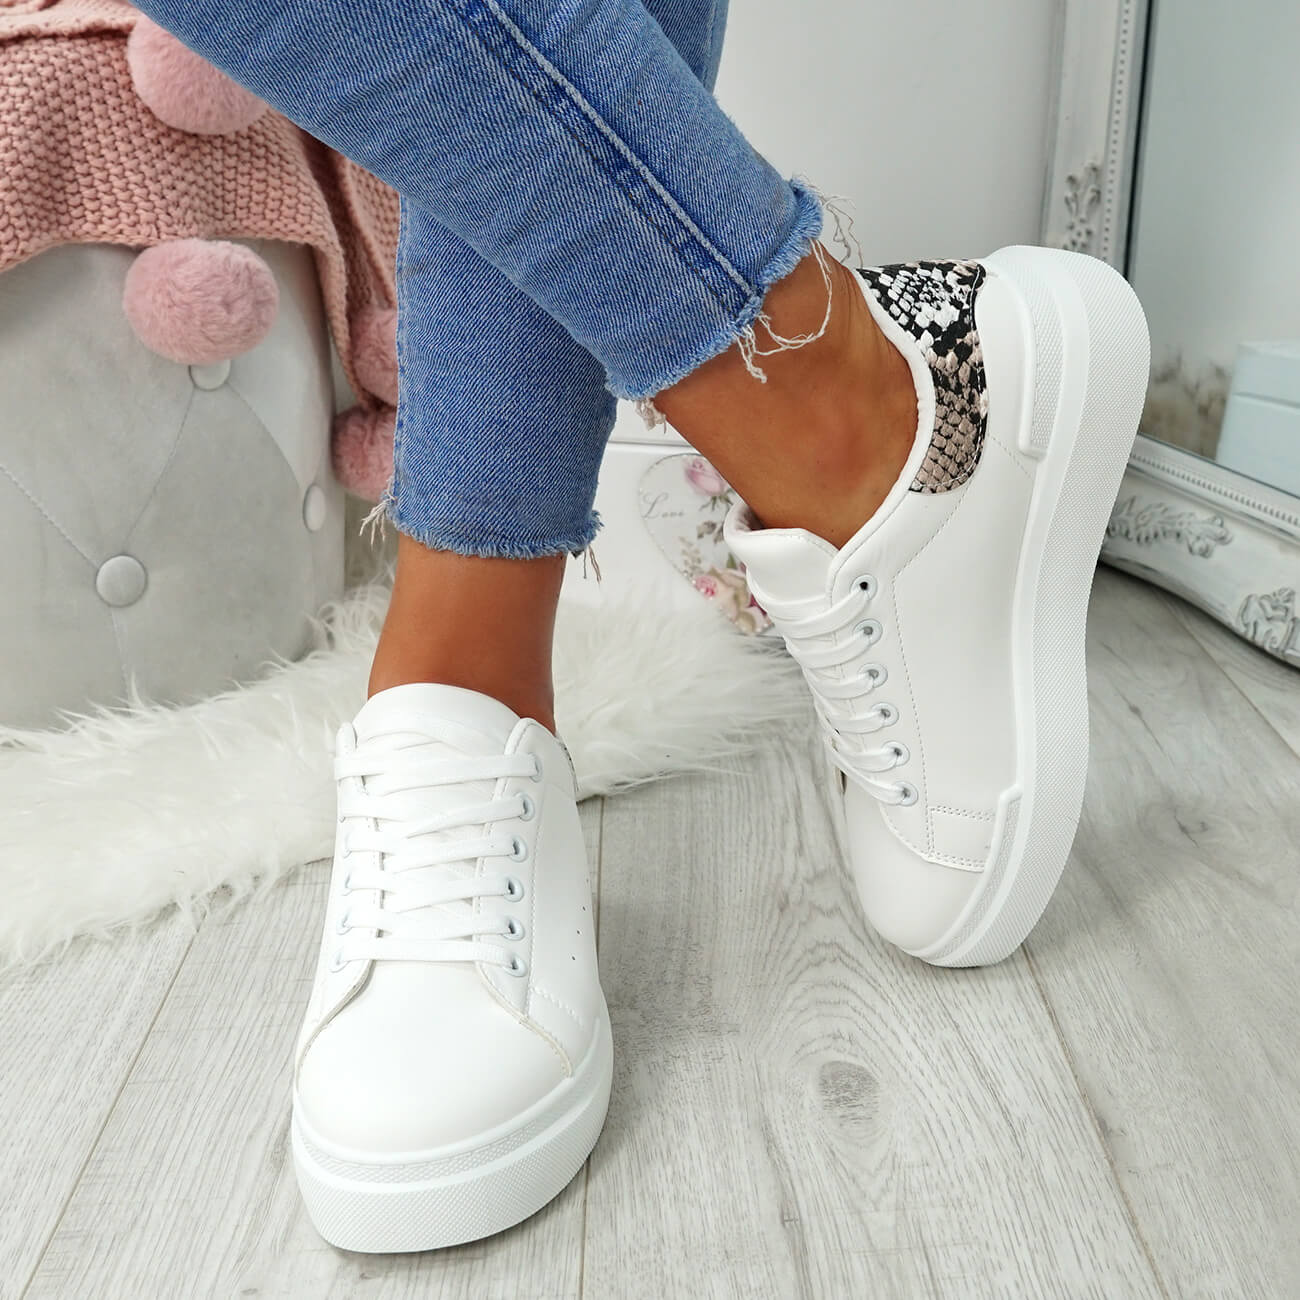 WOMENS-LADIES-LACE-UP-PLIMSOLL-SNEAKERS-CROC-SNAKE-TRAINERS-CASUAL-SHOES-SIZE thumbnail 20